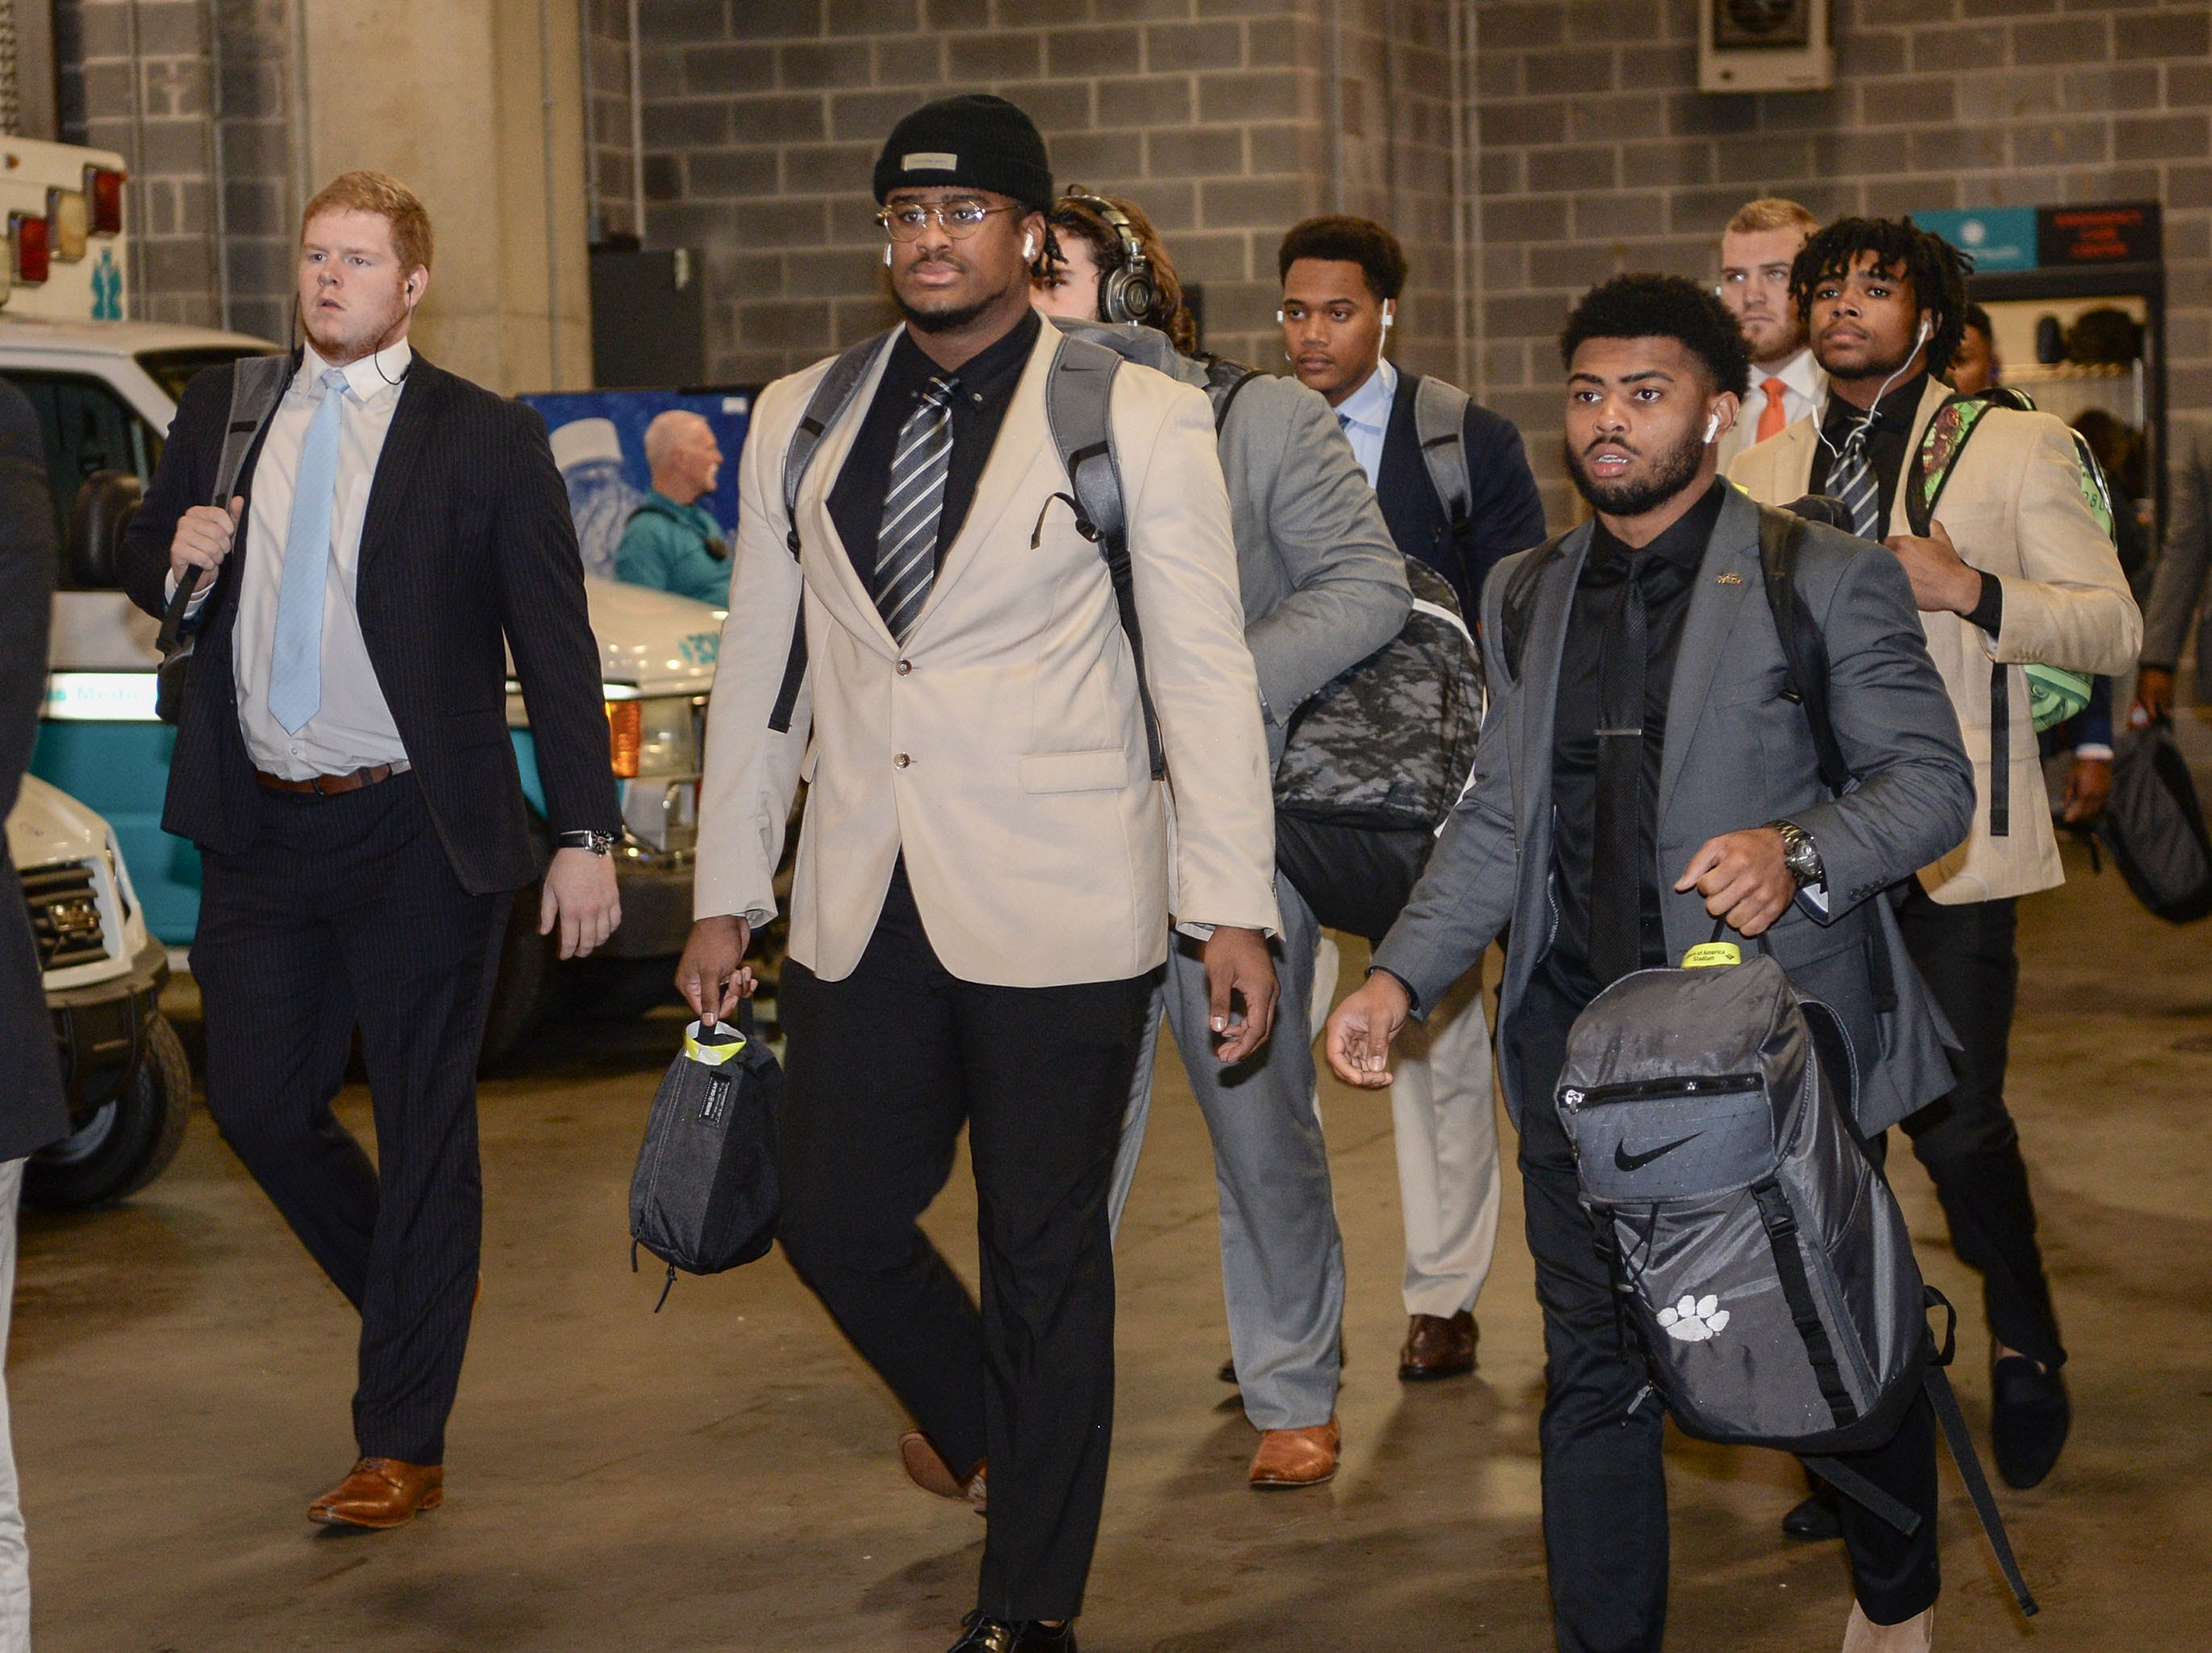 Clemson players arrive before the game with Pittsburgh at the Dr. Pepper ACC football championship at Bank of America Stadium in Charlotte, N.C. on Saturday, December 1, 2018.